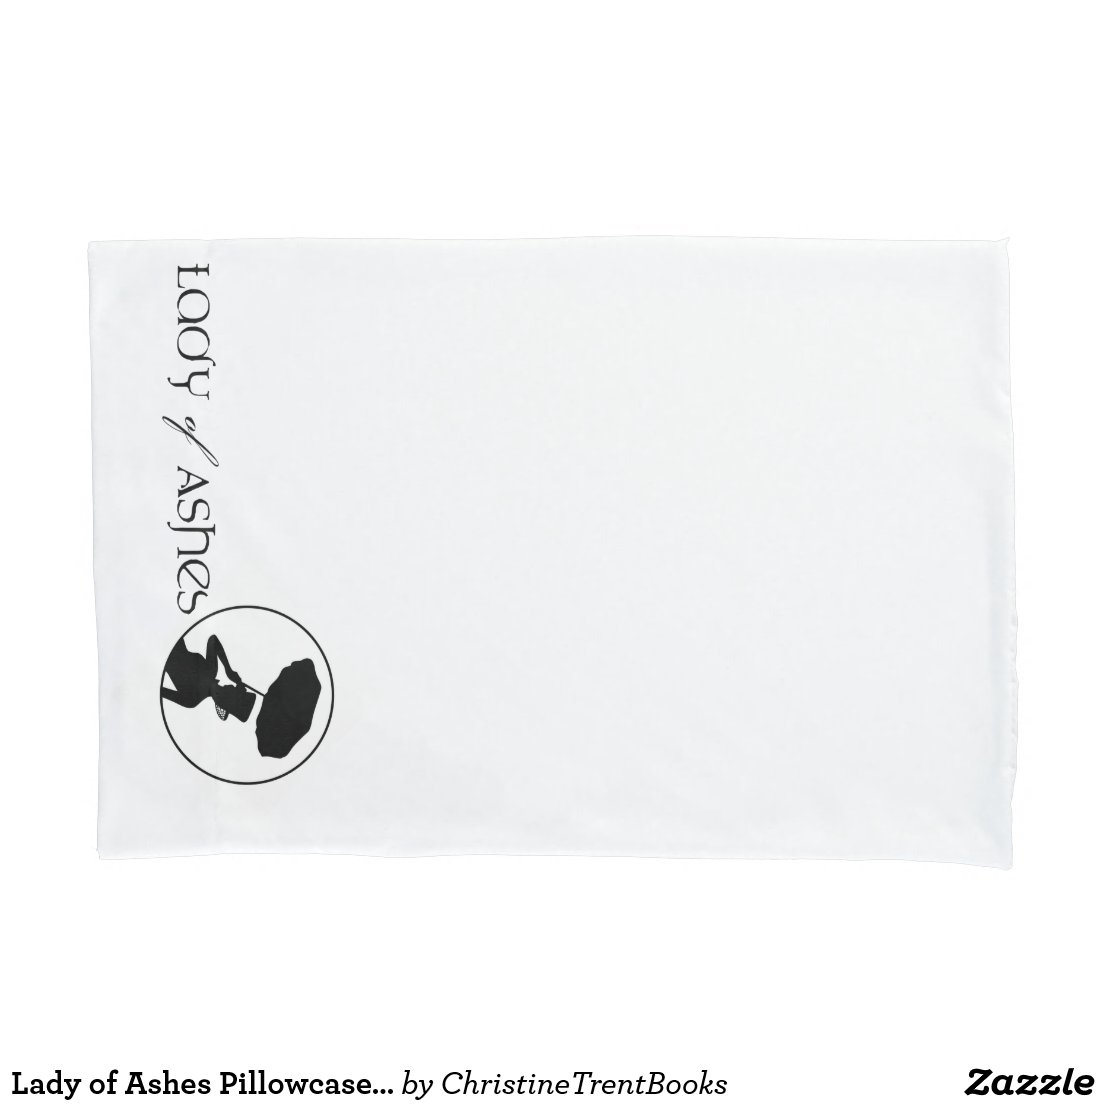 Lady of Ashes Pillowcase, Single Pillowcase